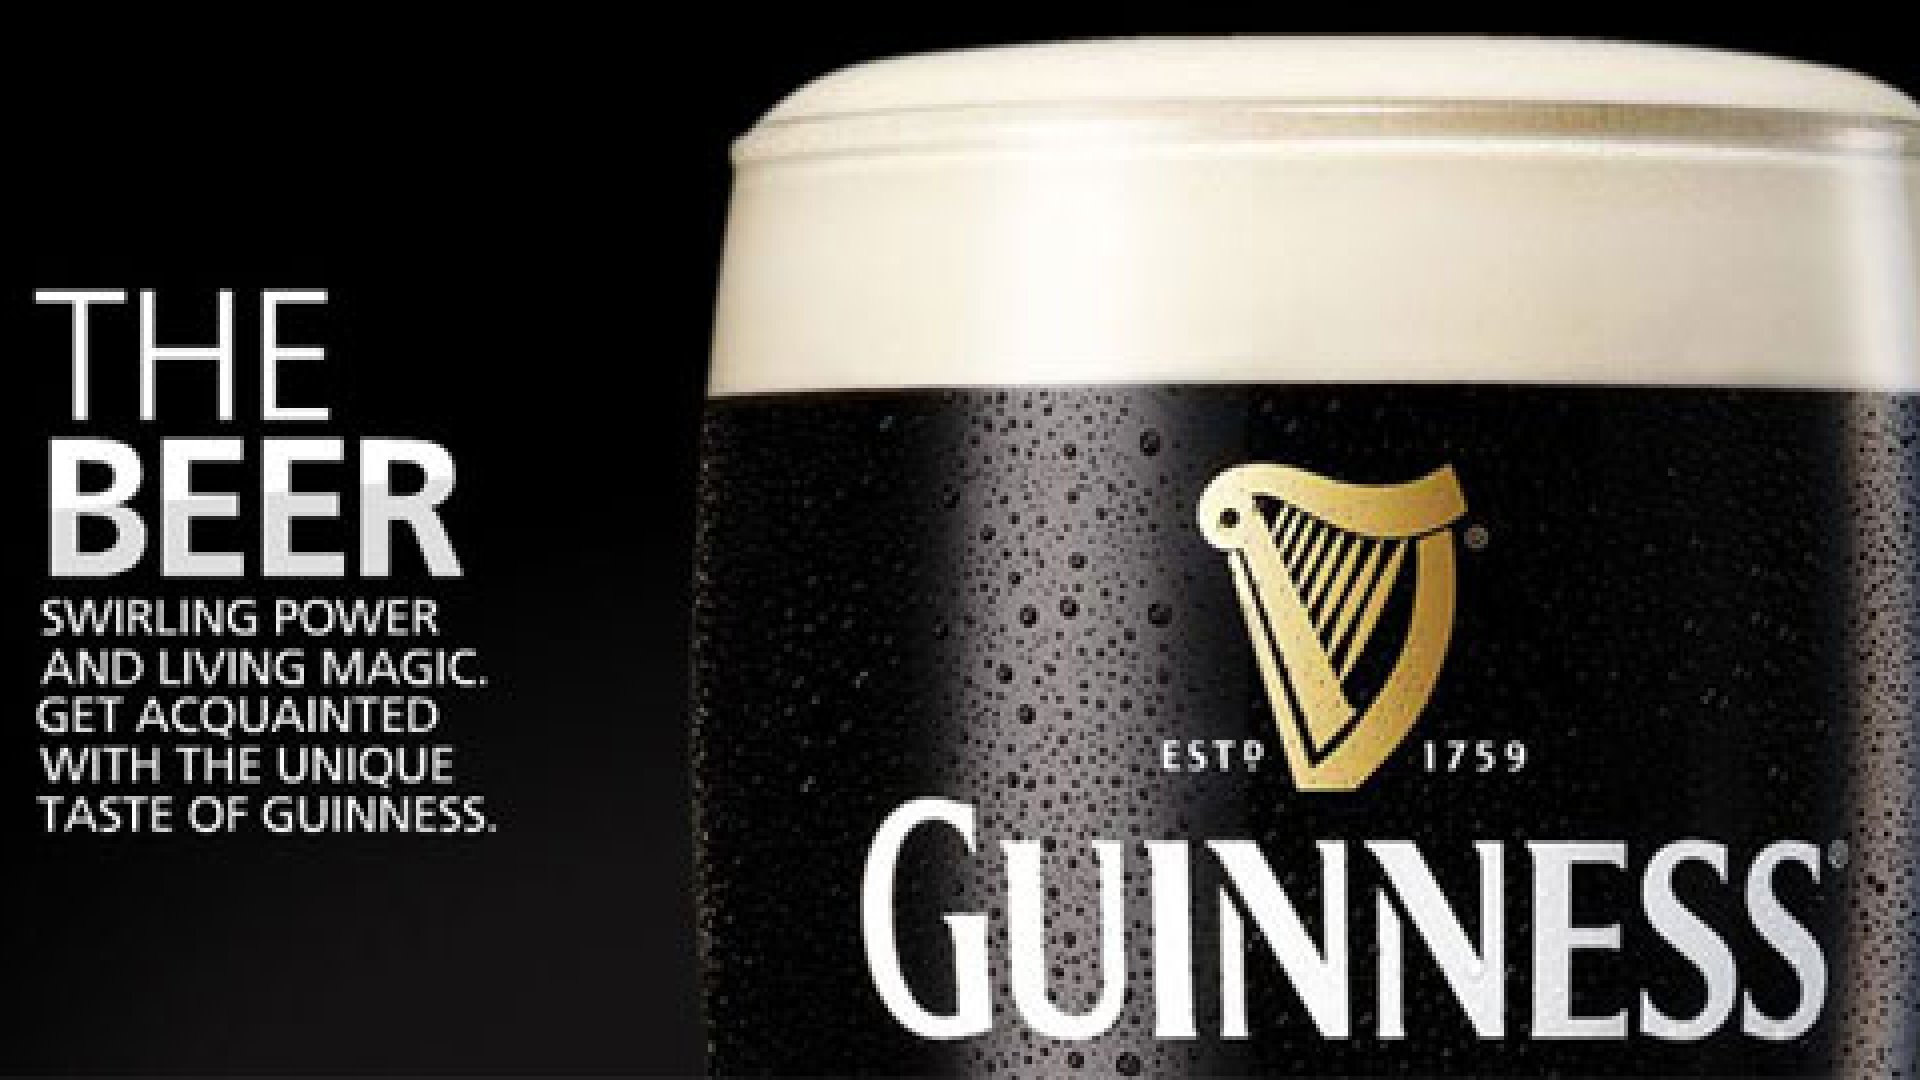 Guinness is a popular Irish dry stout.